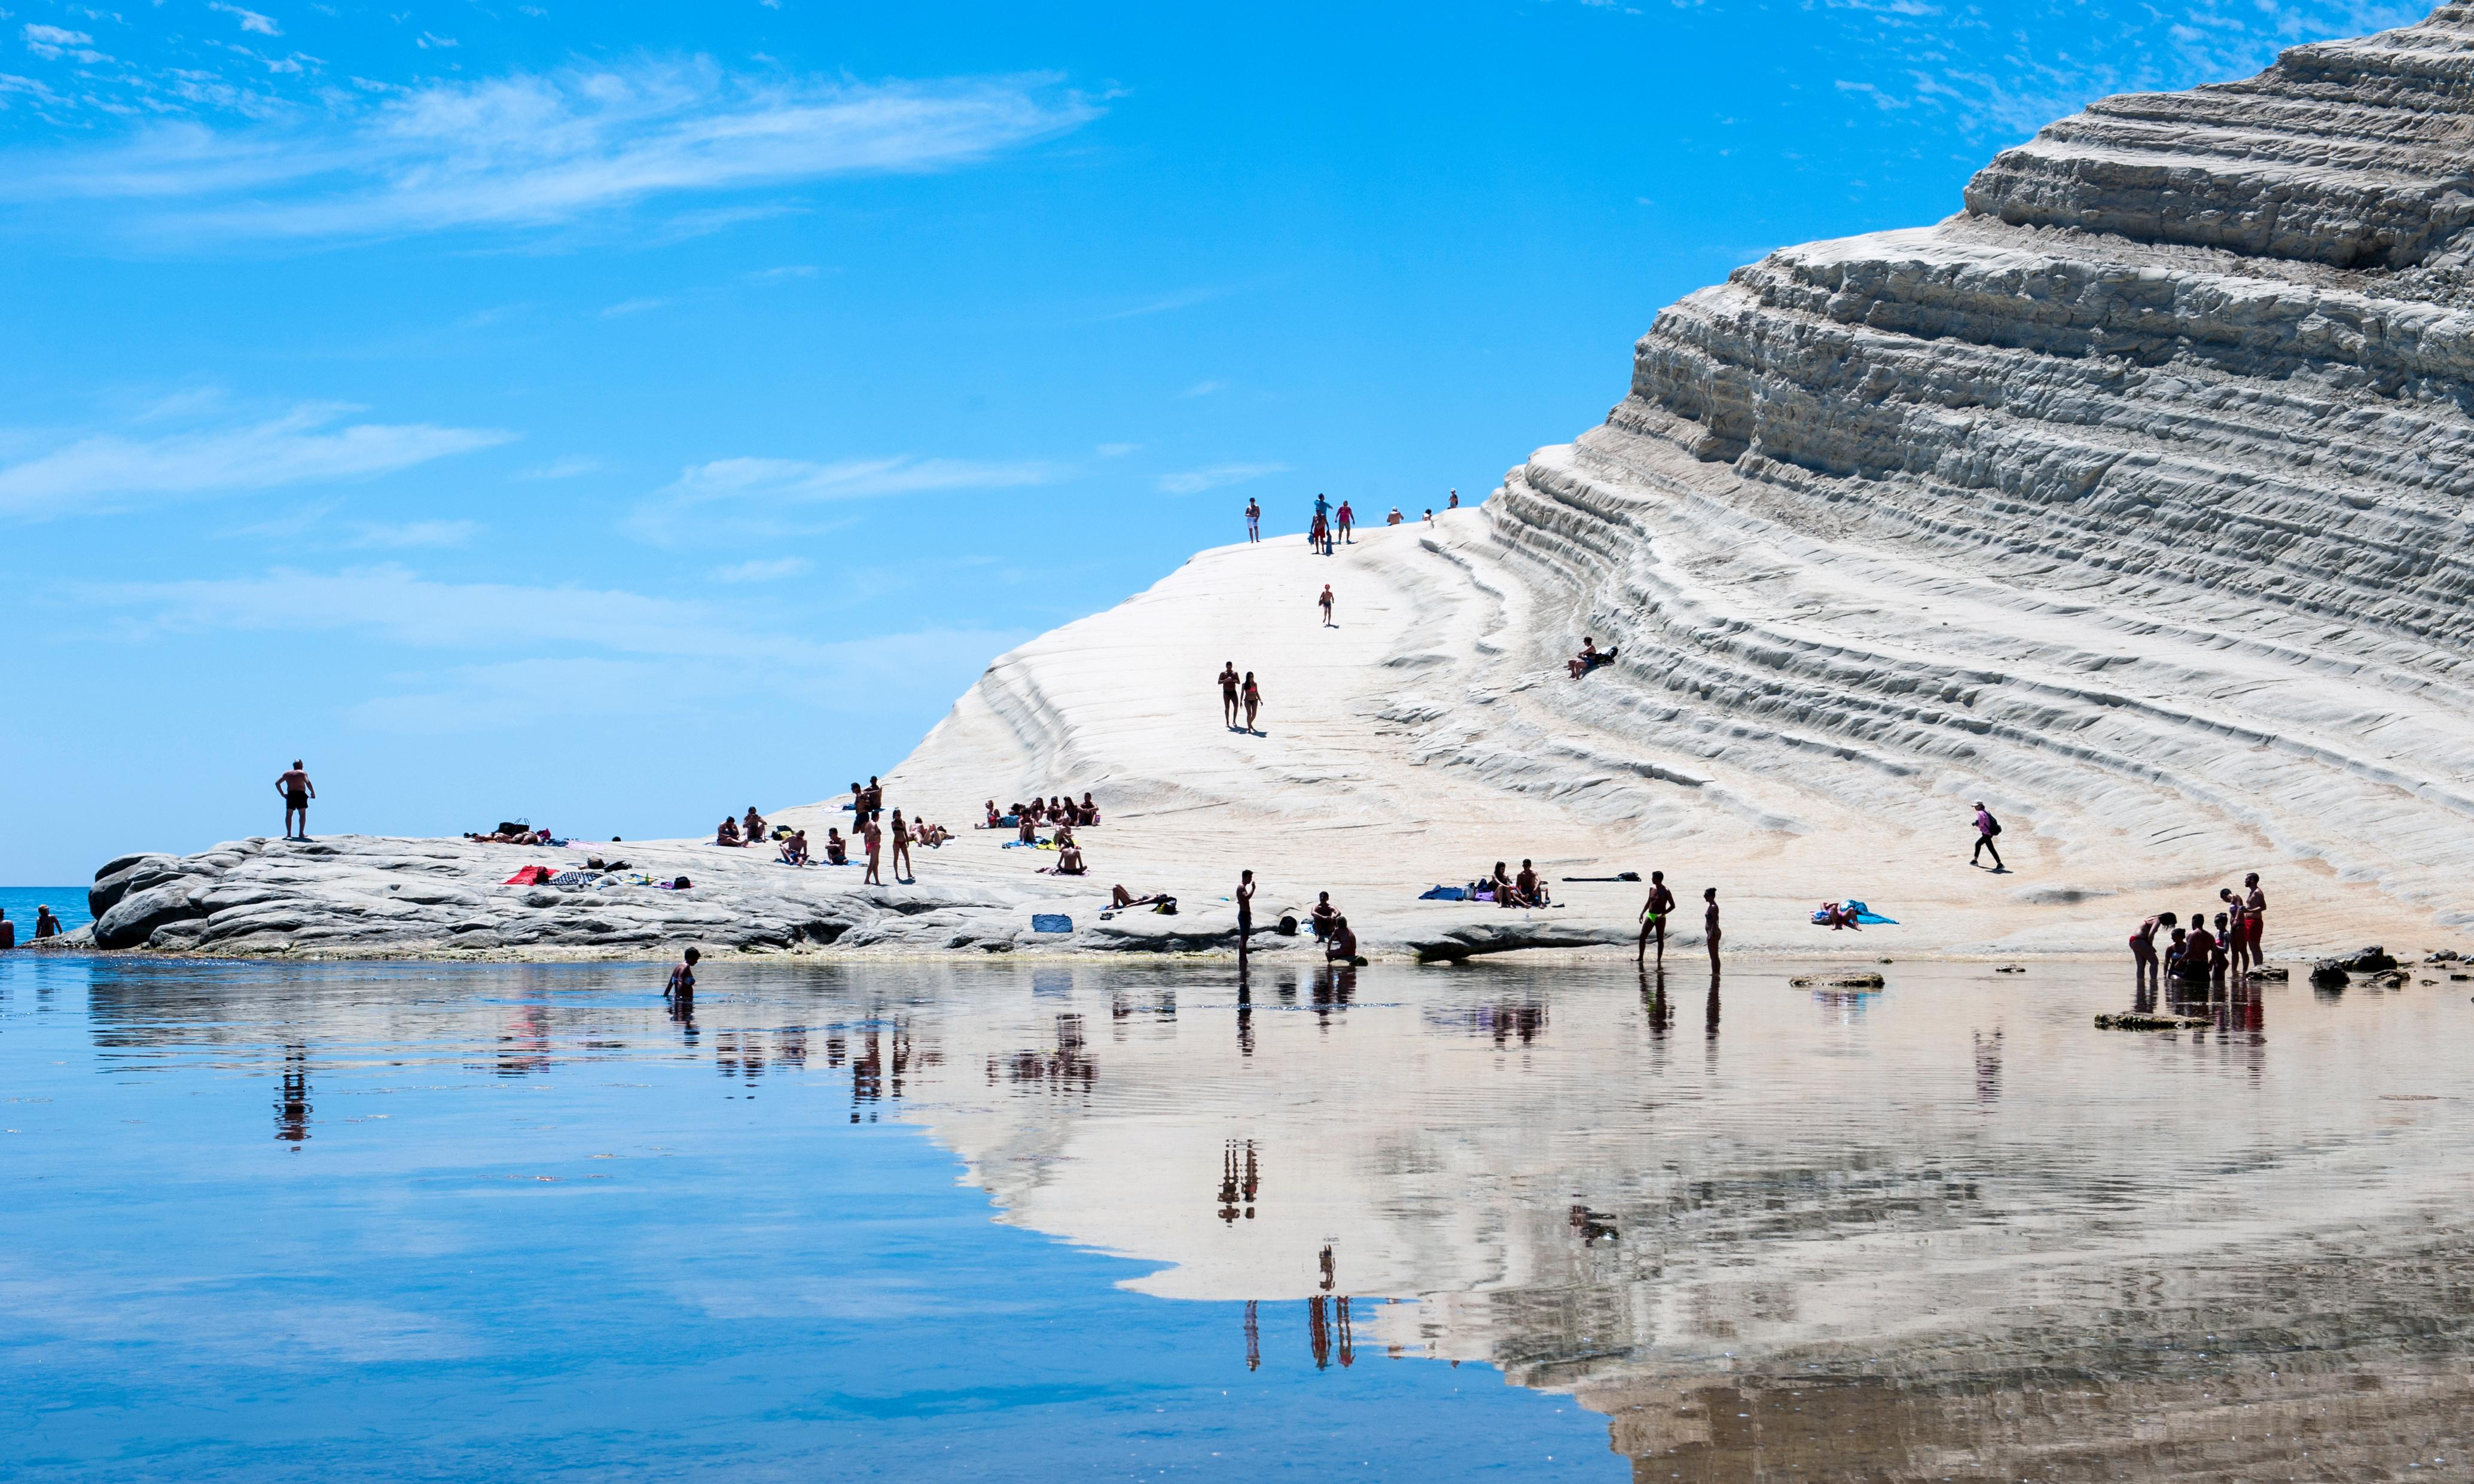 Lawyers seize Italian Scala dei Turchi over conservation concerns